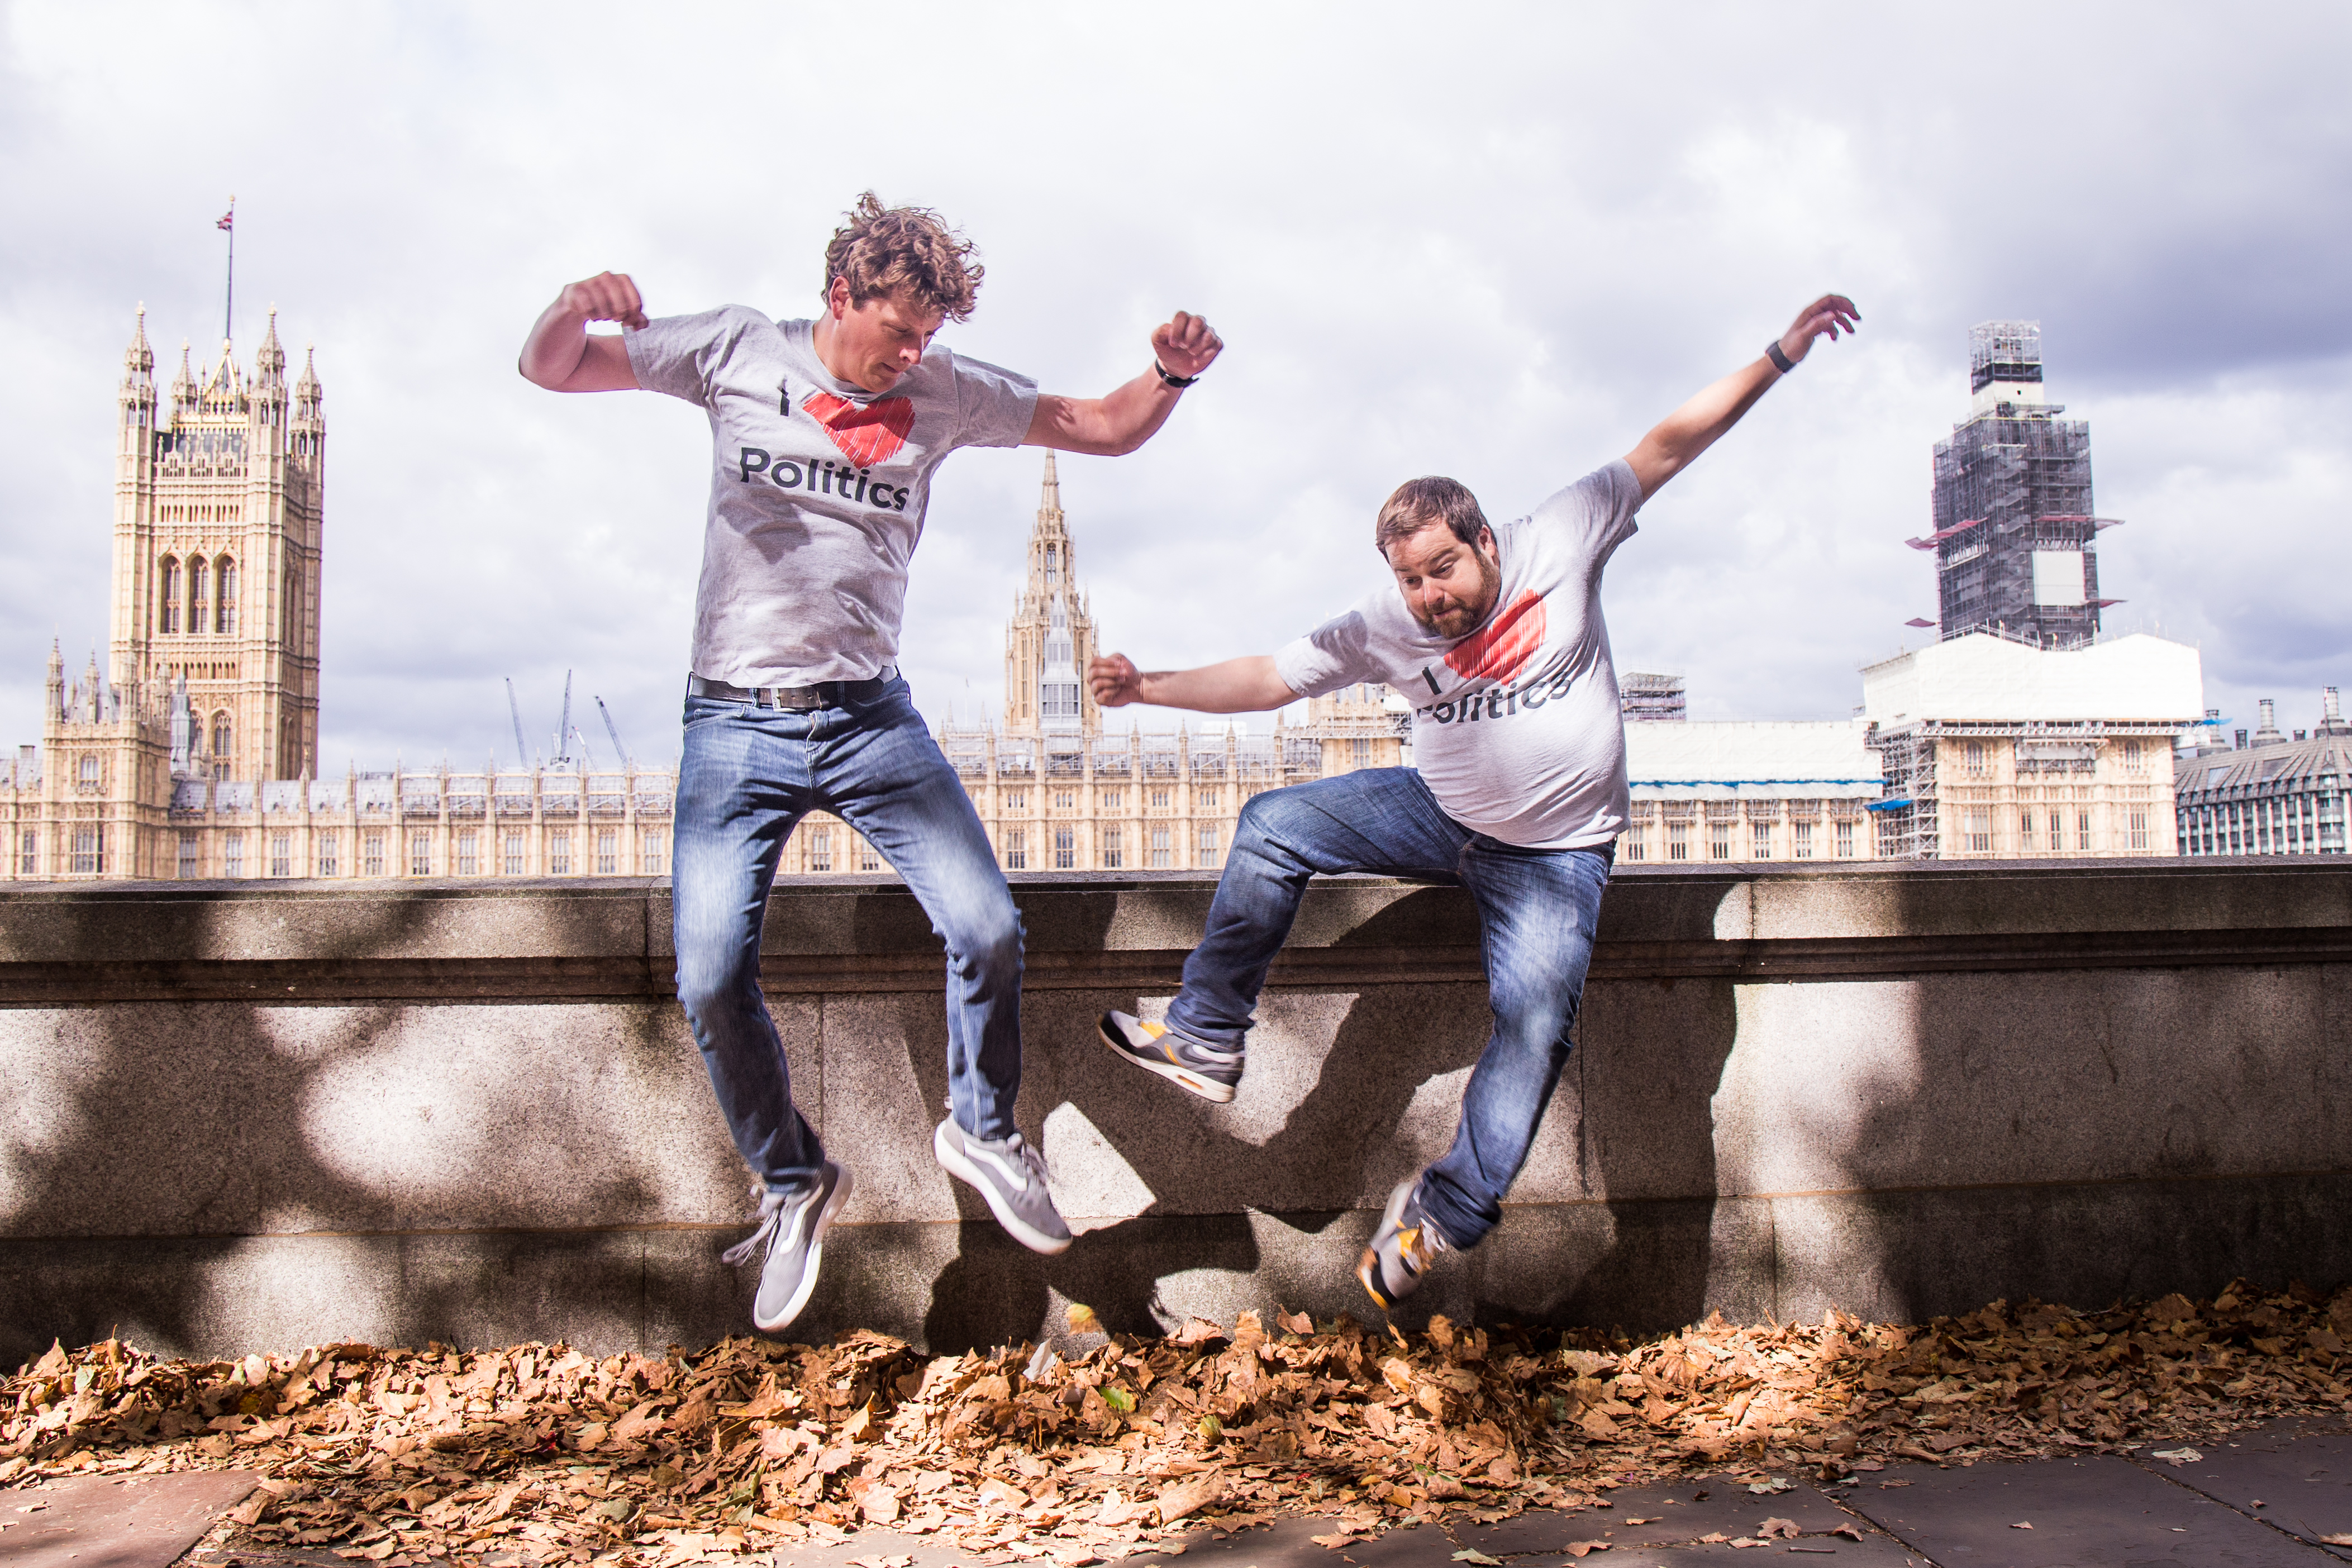 Photograph of two male comedians leaping off a ledge near the Thames with Westminster in the background